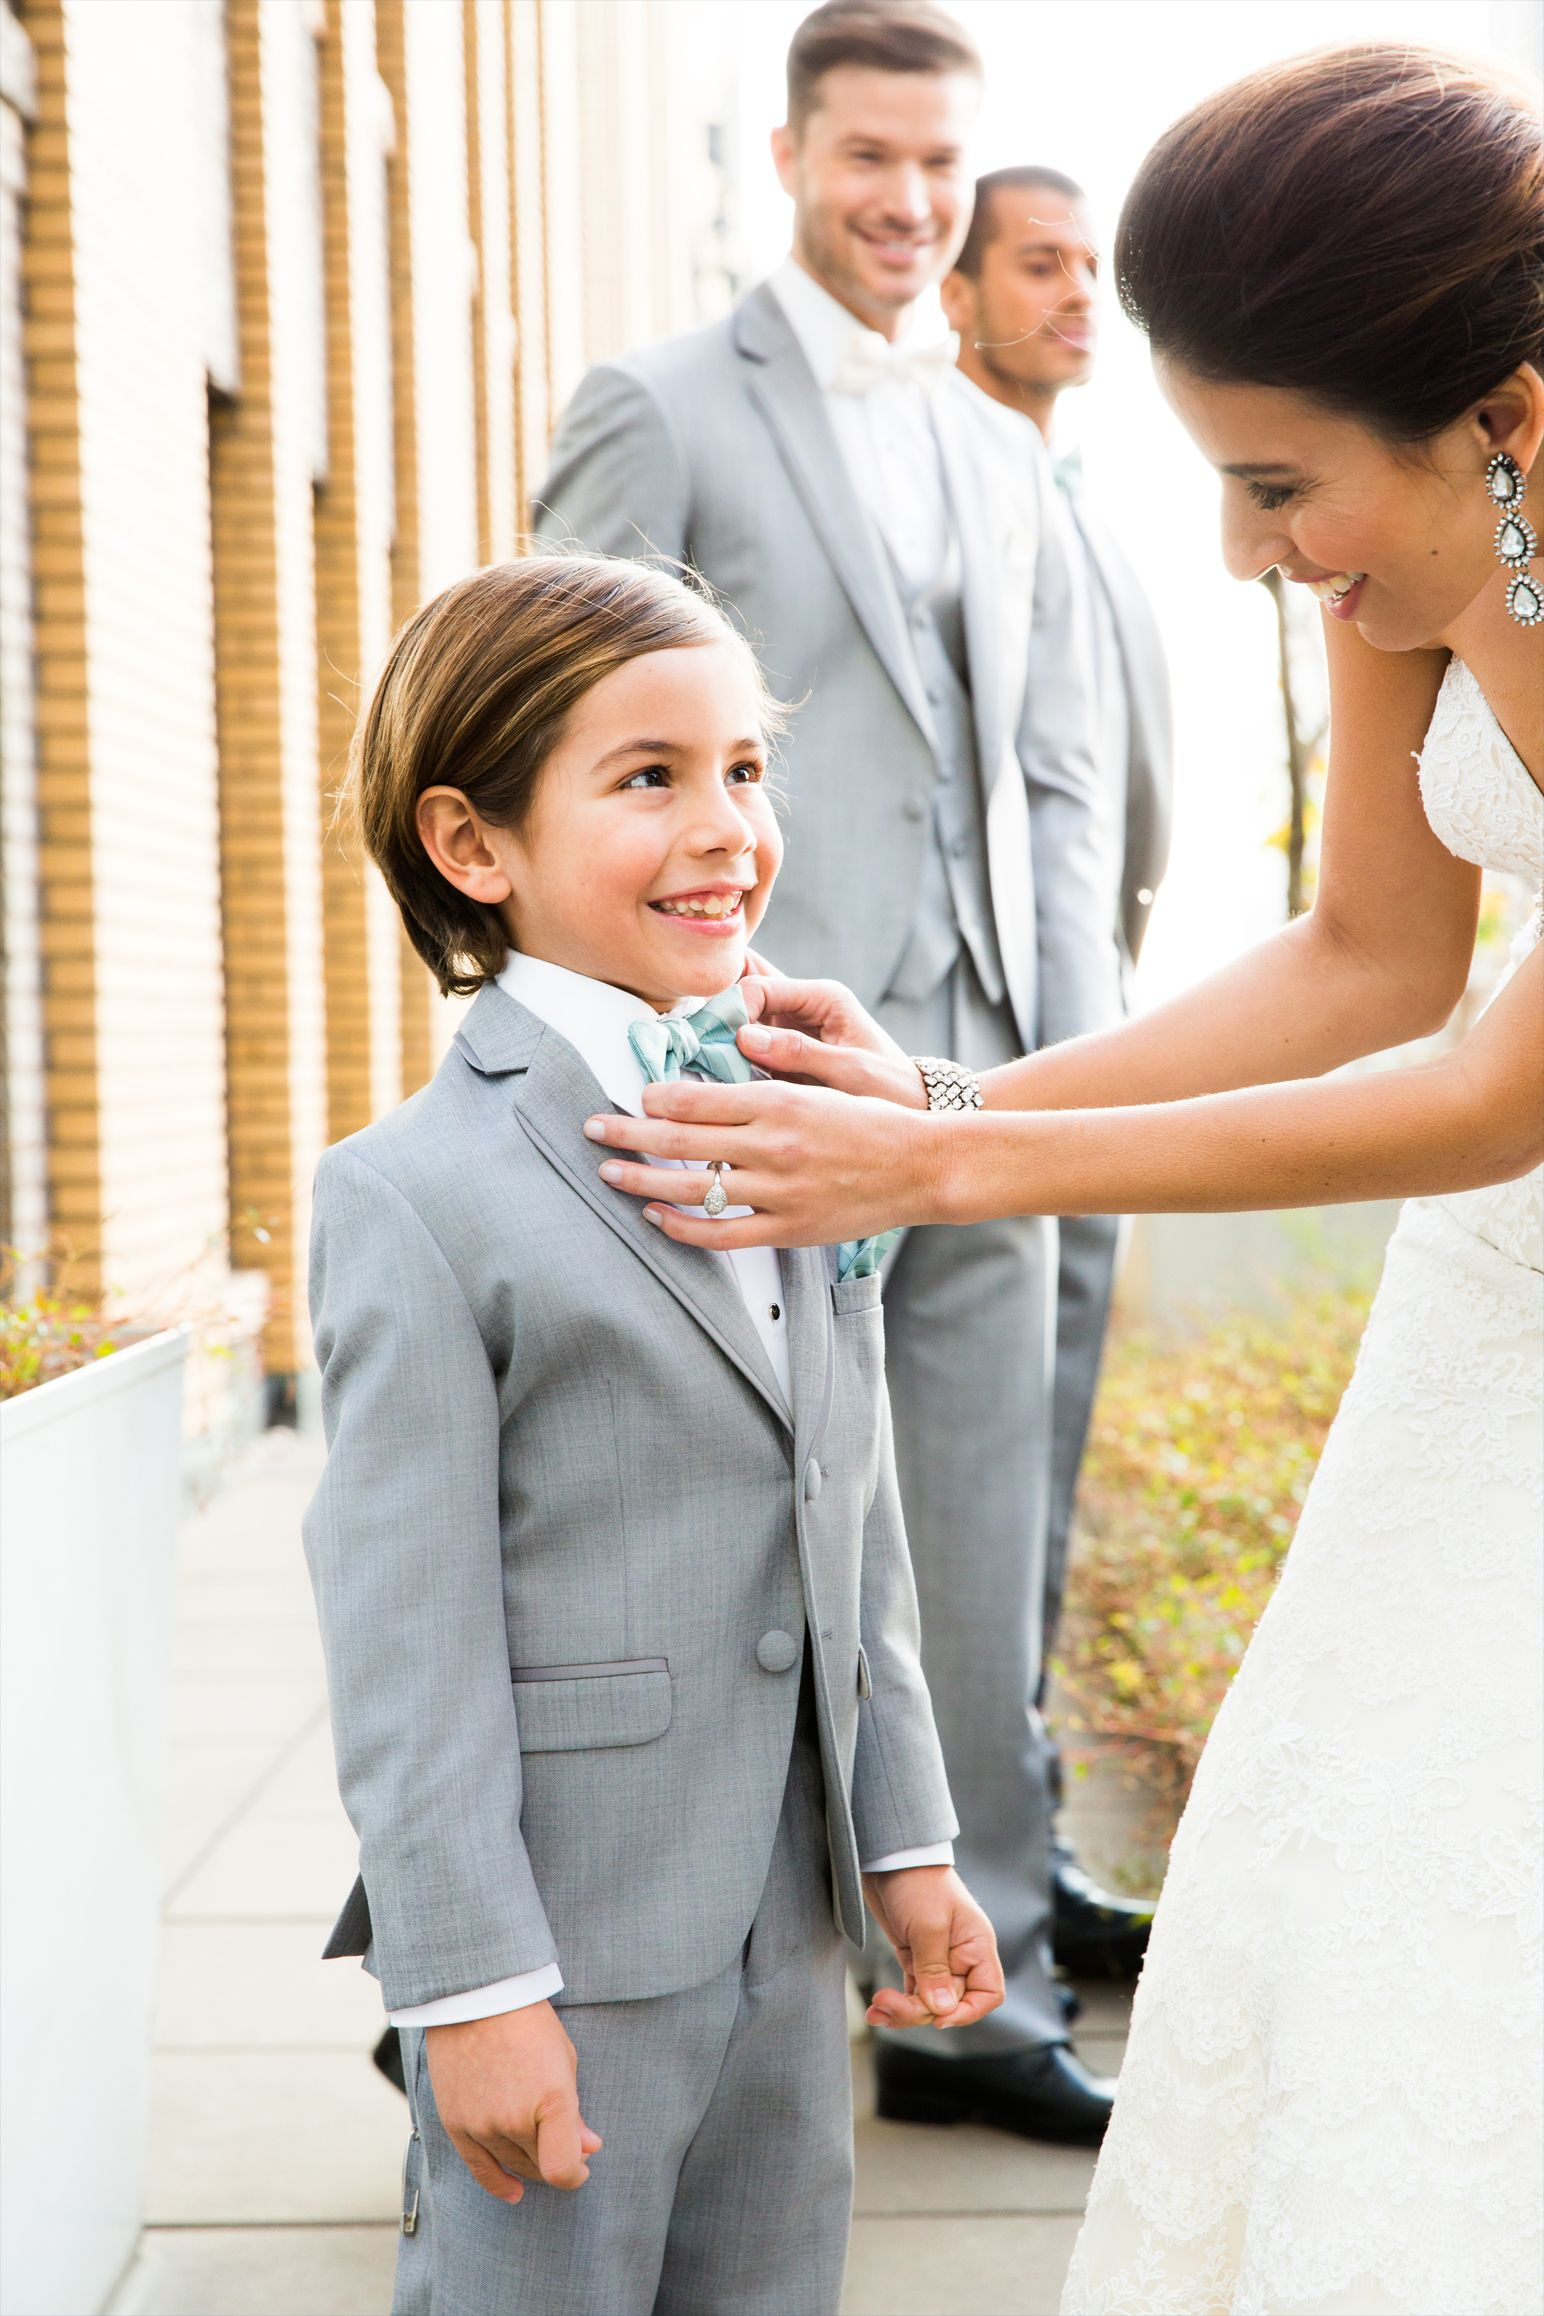 Suits and ties for the little guys. Xebo #wedding #ringbearer ...